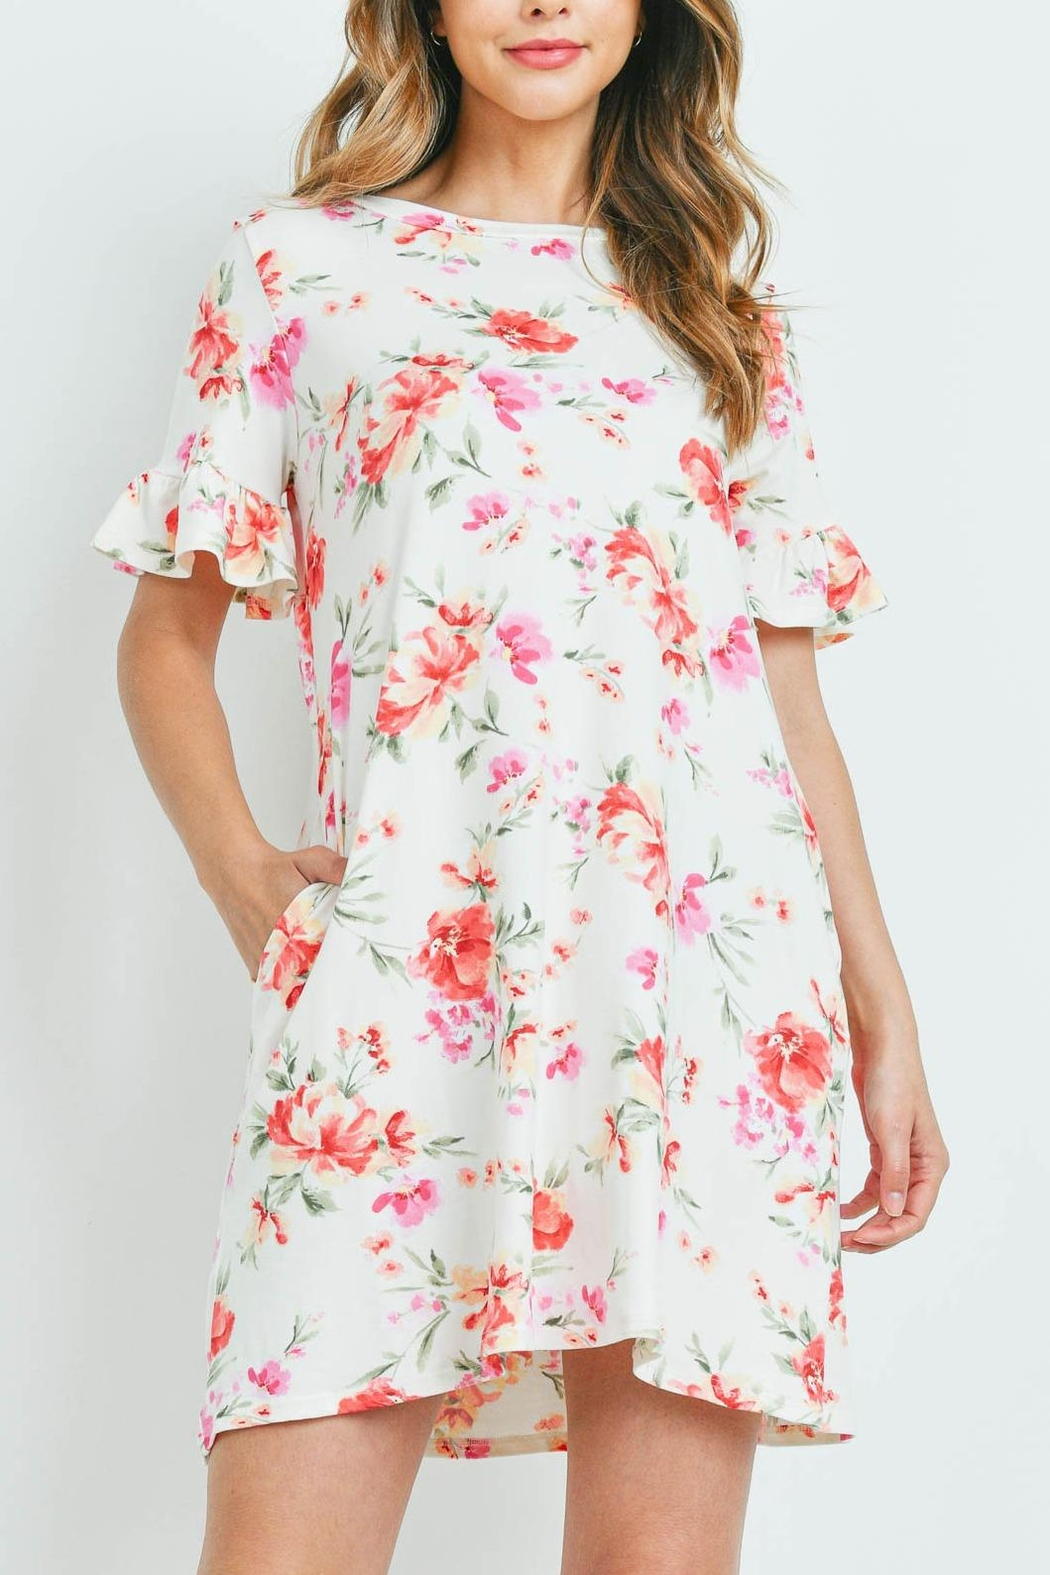 Riah Fashion Floral-Ruffle-Sleeves-Swing-Dress - Front Cropped Image